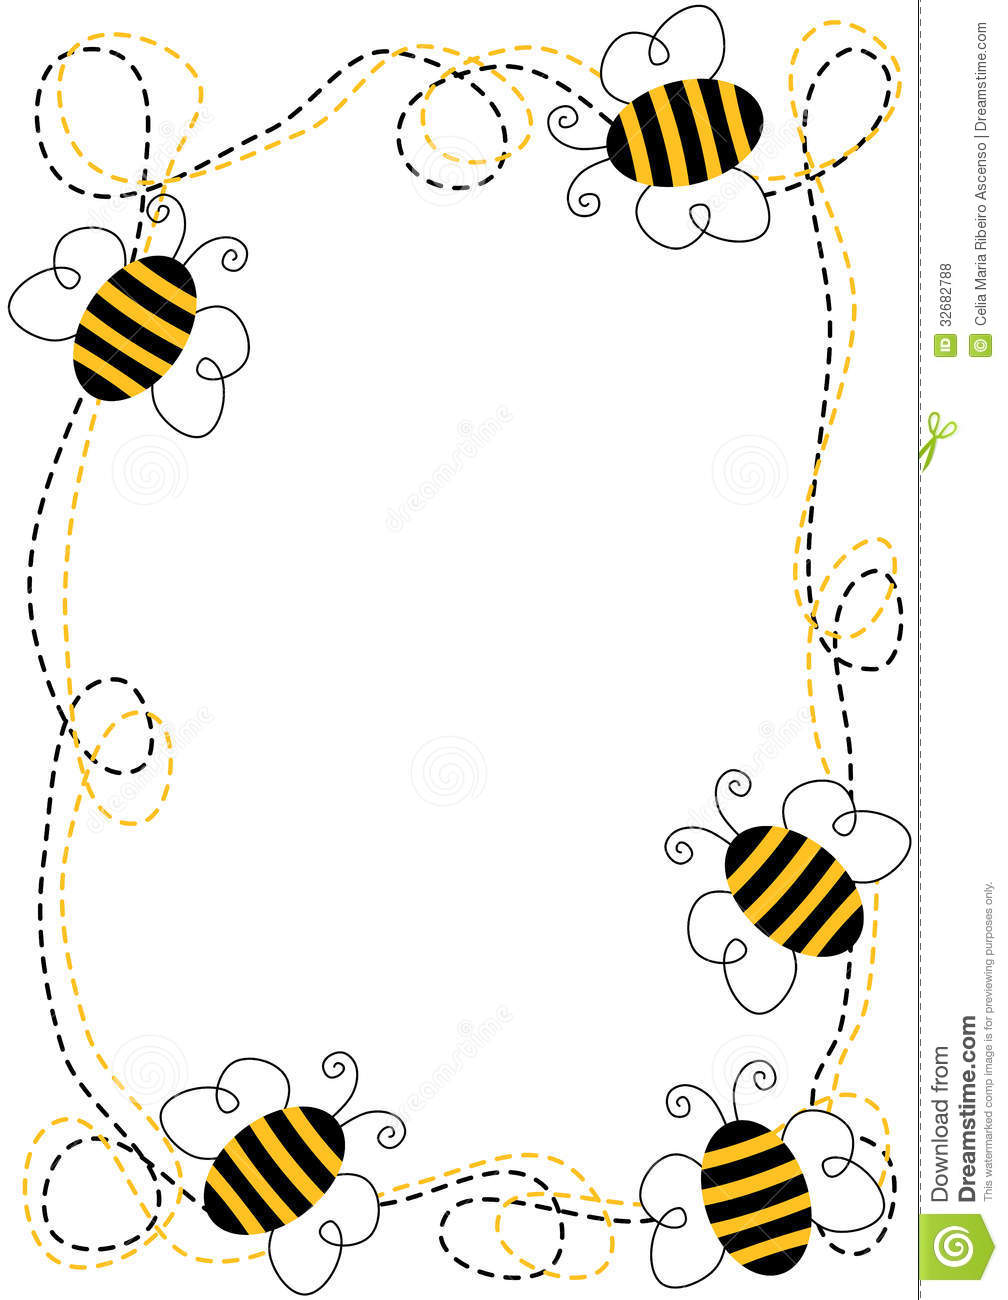 marco de las abejas del vuelo stock de ilustraci u00f3n clipart animals reading clipart animals free